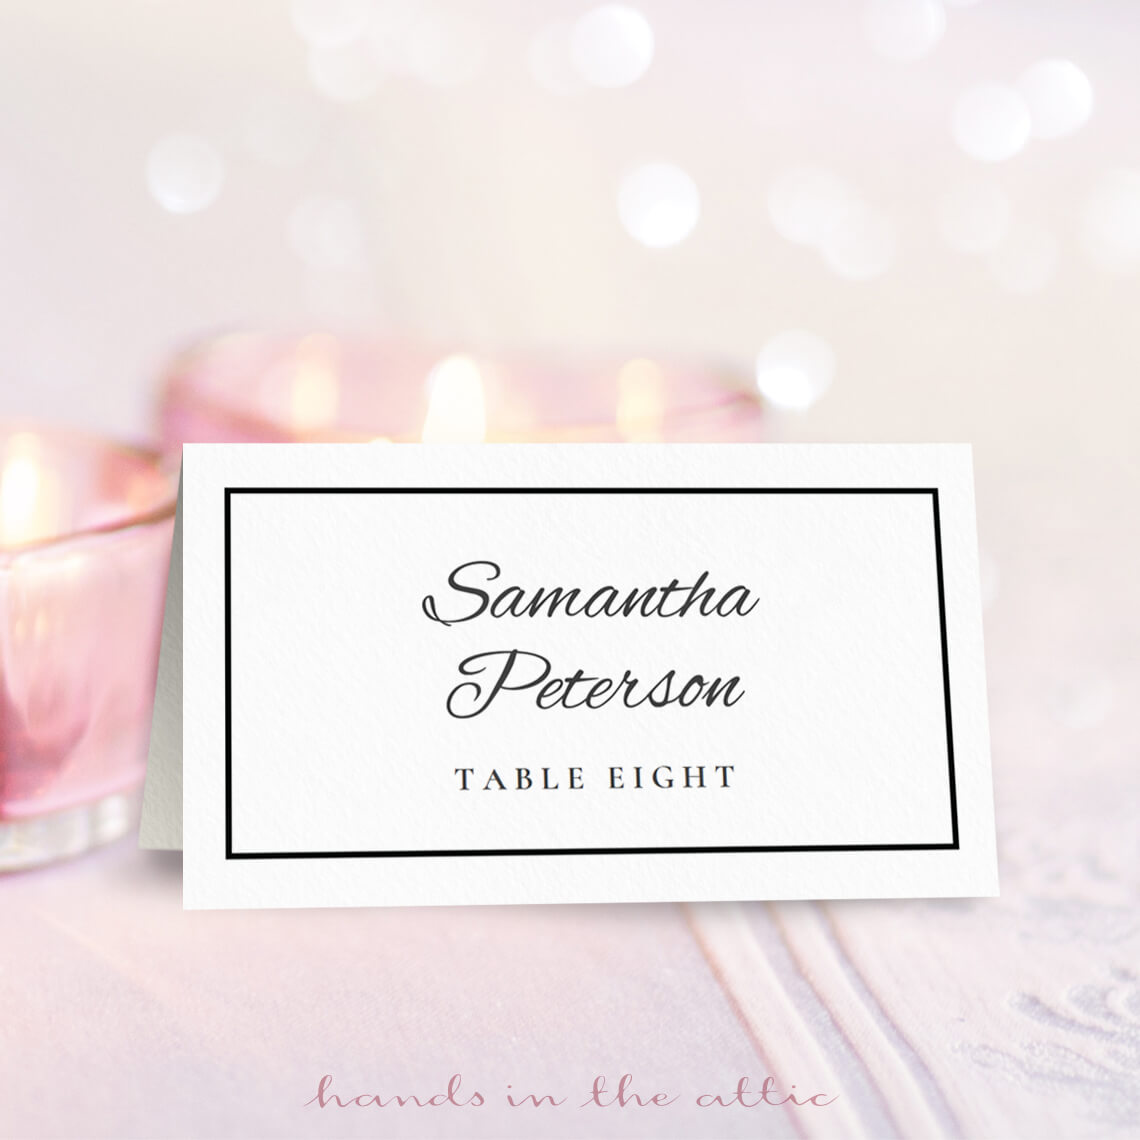 photo about Free Printable Wedding Place Cards titled Marriage Issue Card Template No cost Down load Arms within the Attic